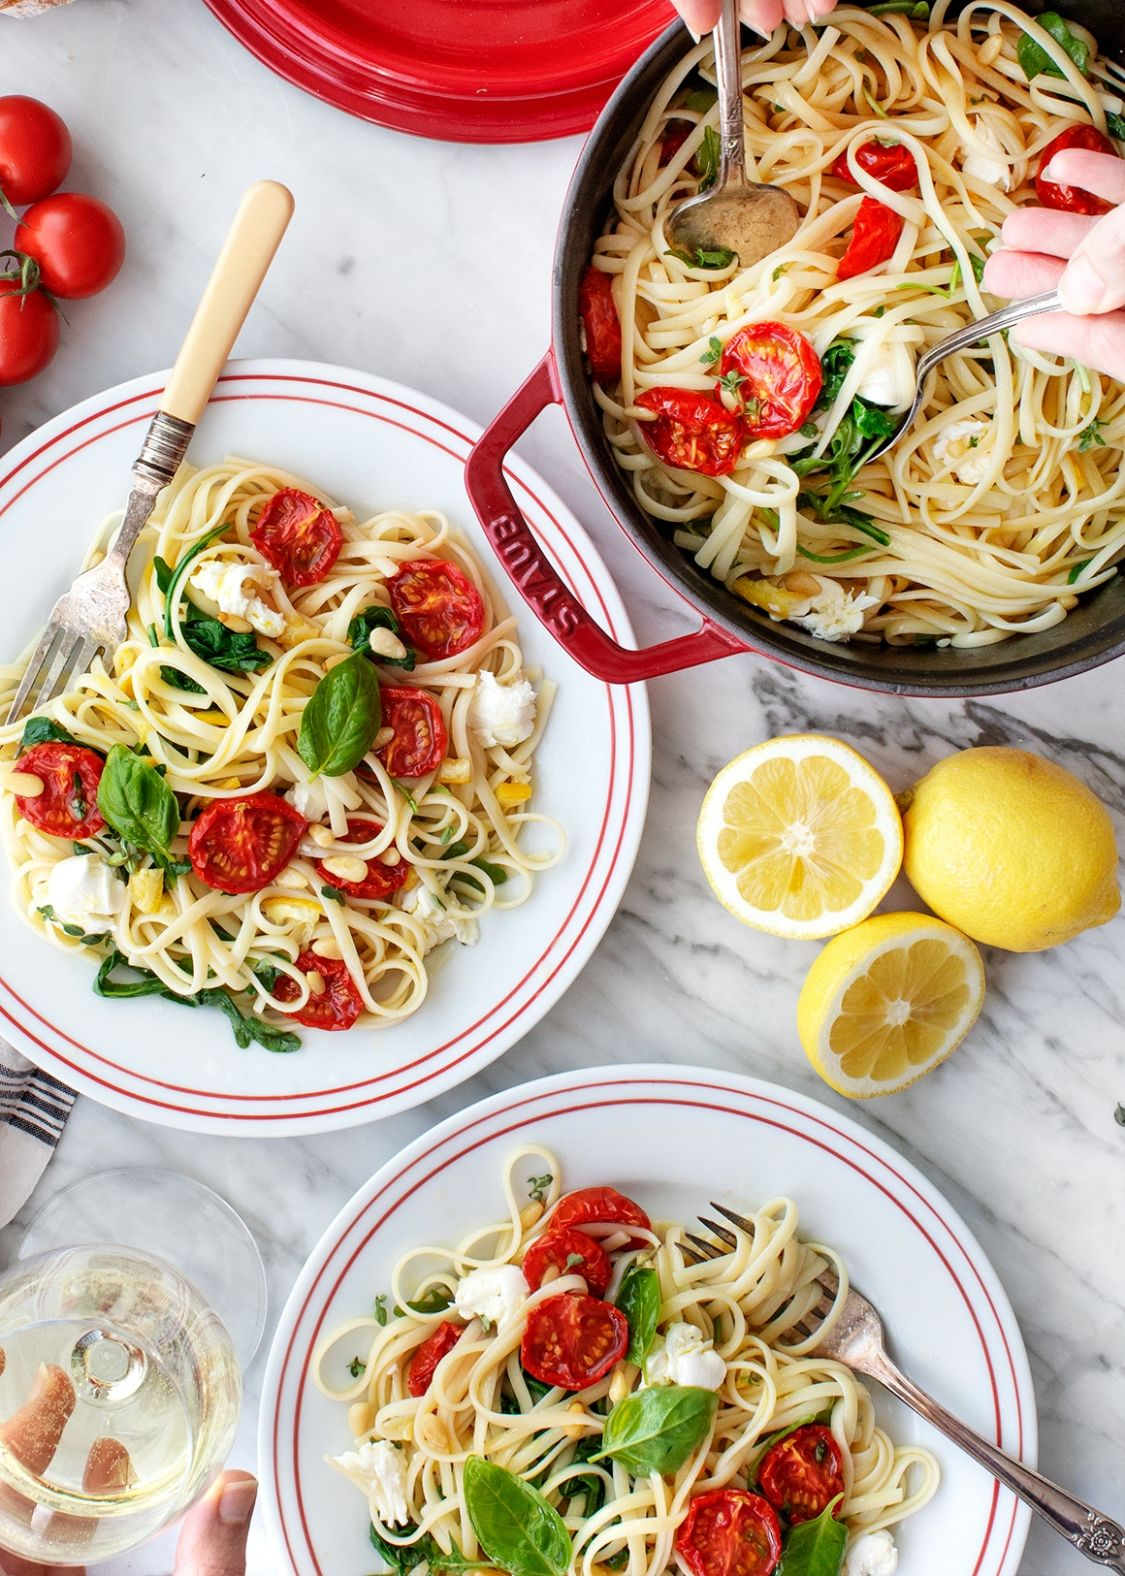 Pasta Recipes: Linguine with Lemon - Pasta Recipes Quick